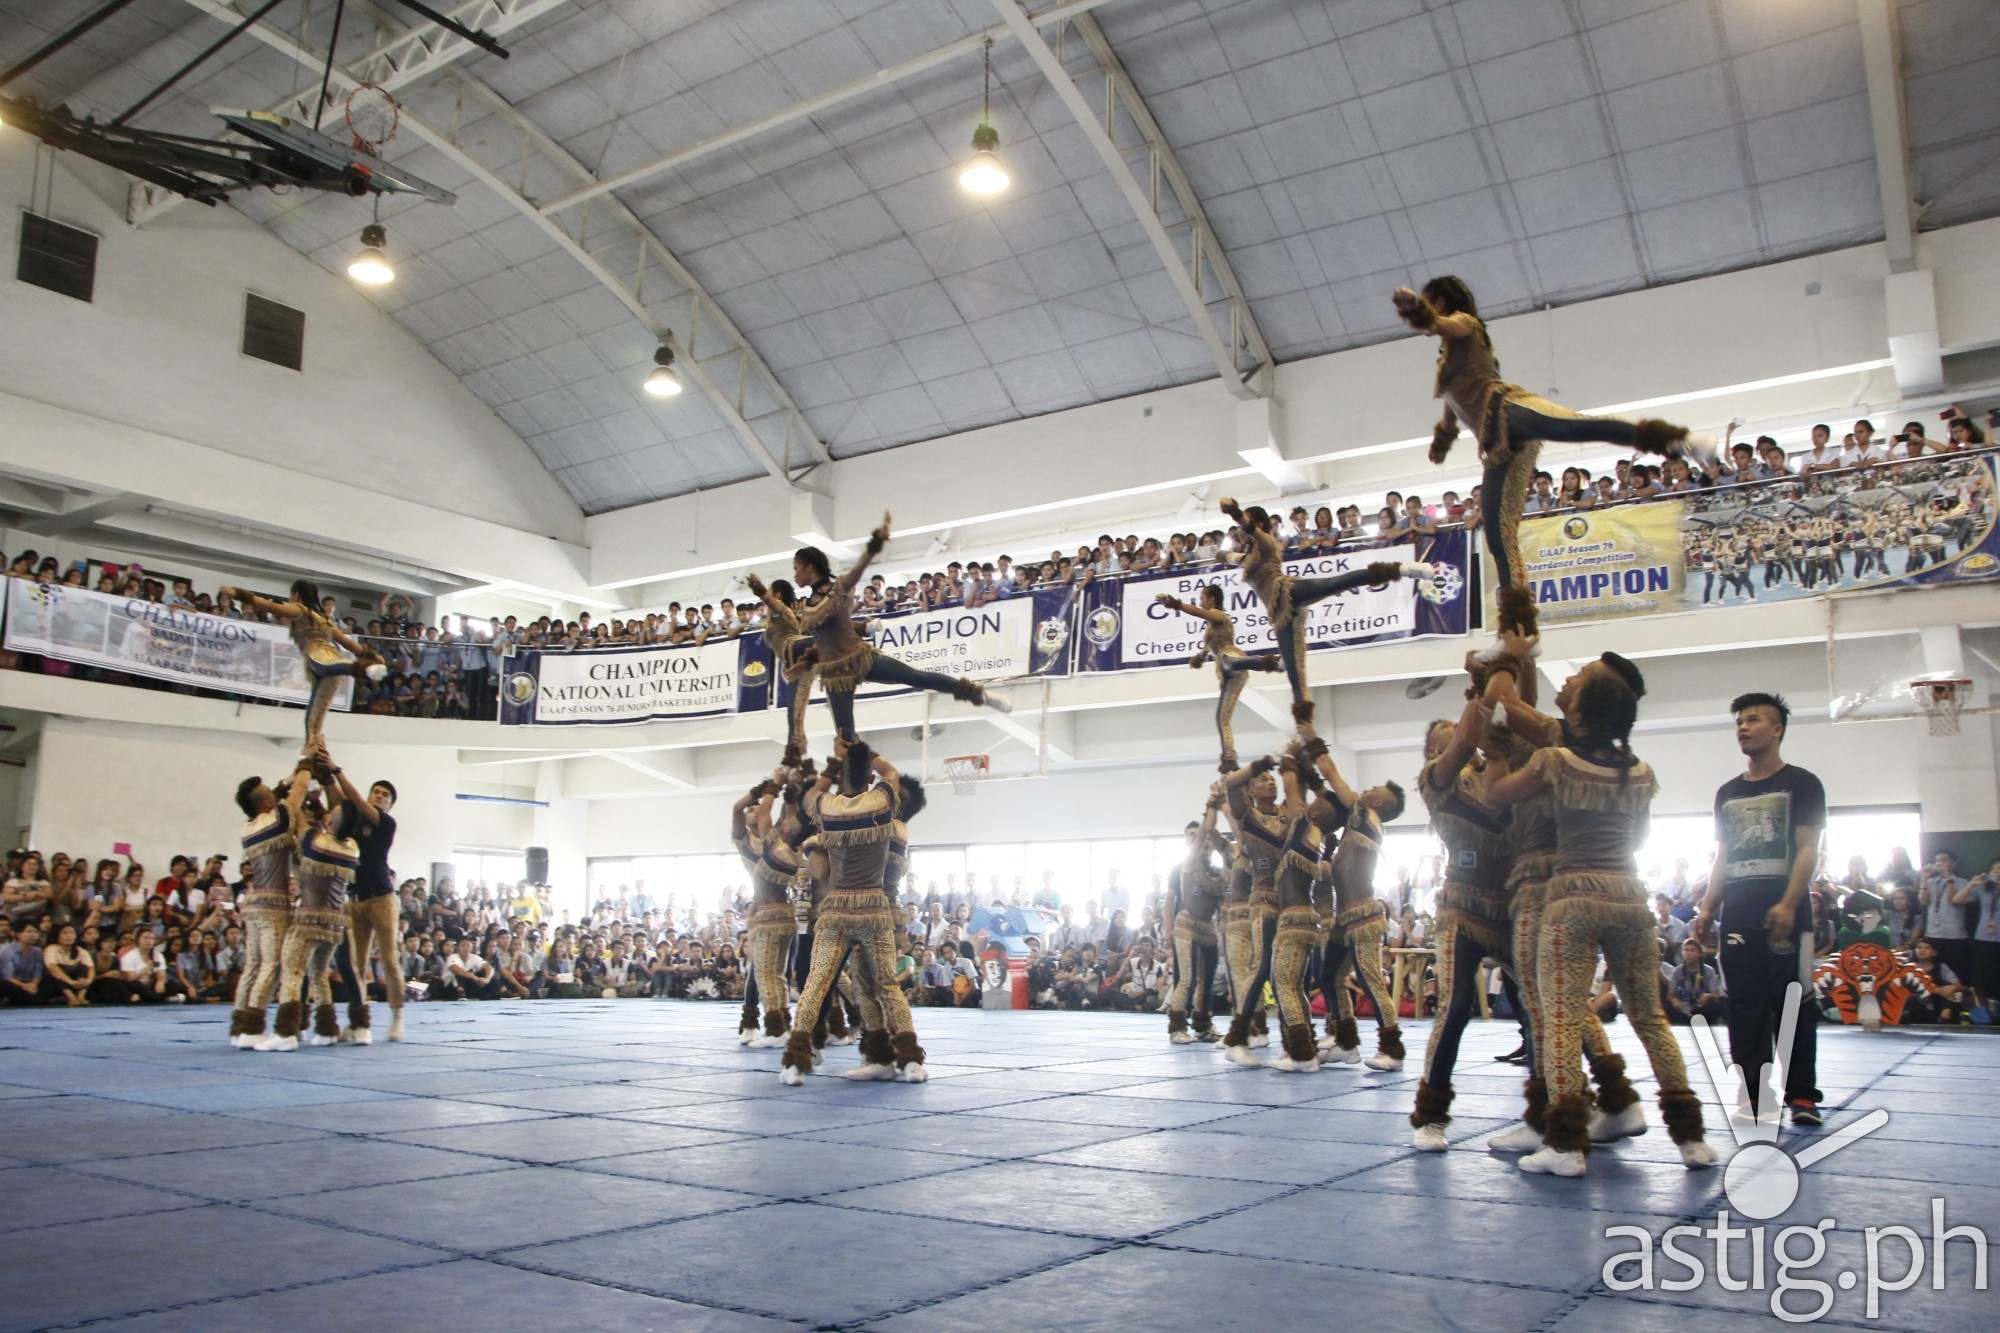 National University (NU) performs UAAP Cheer Dance competition routine